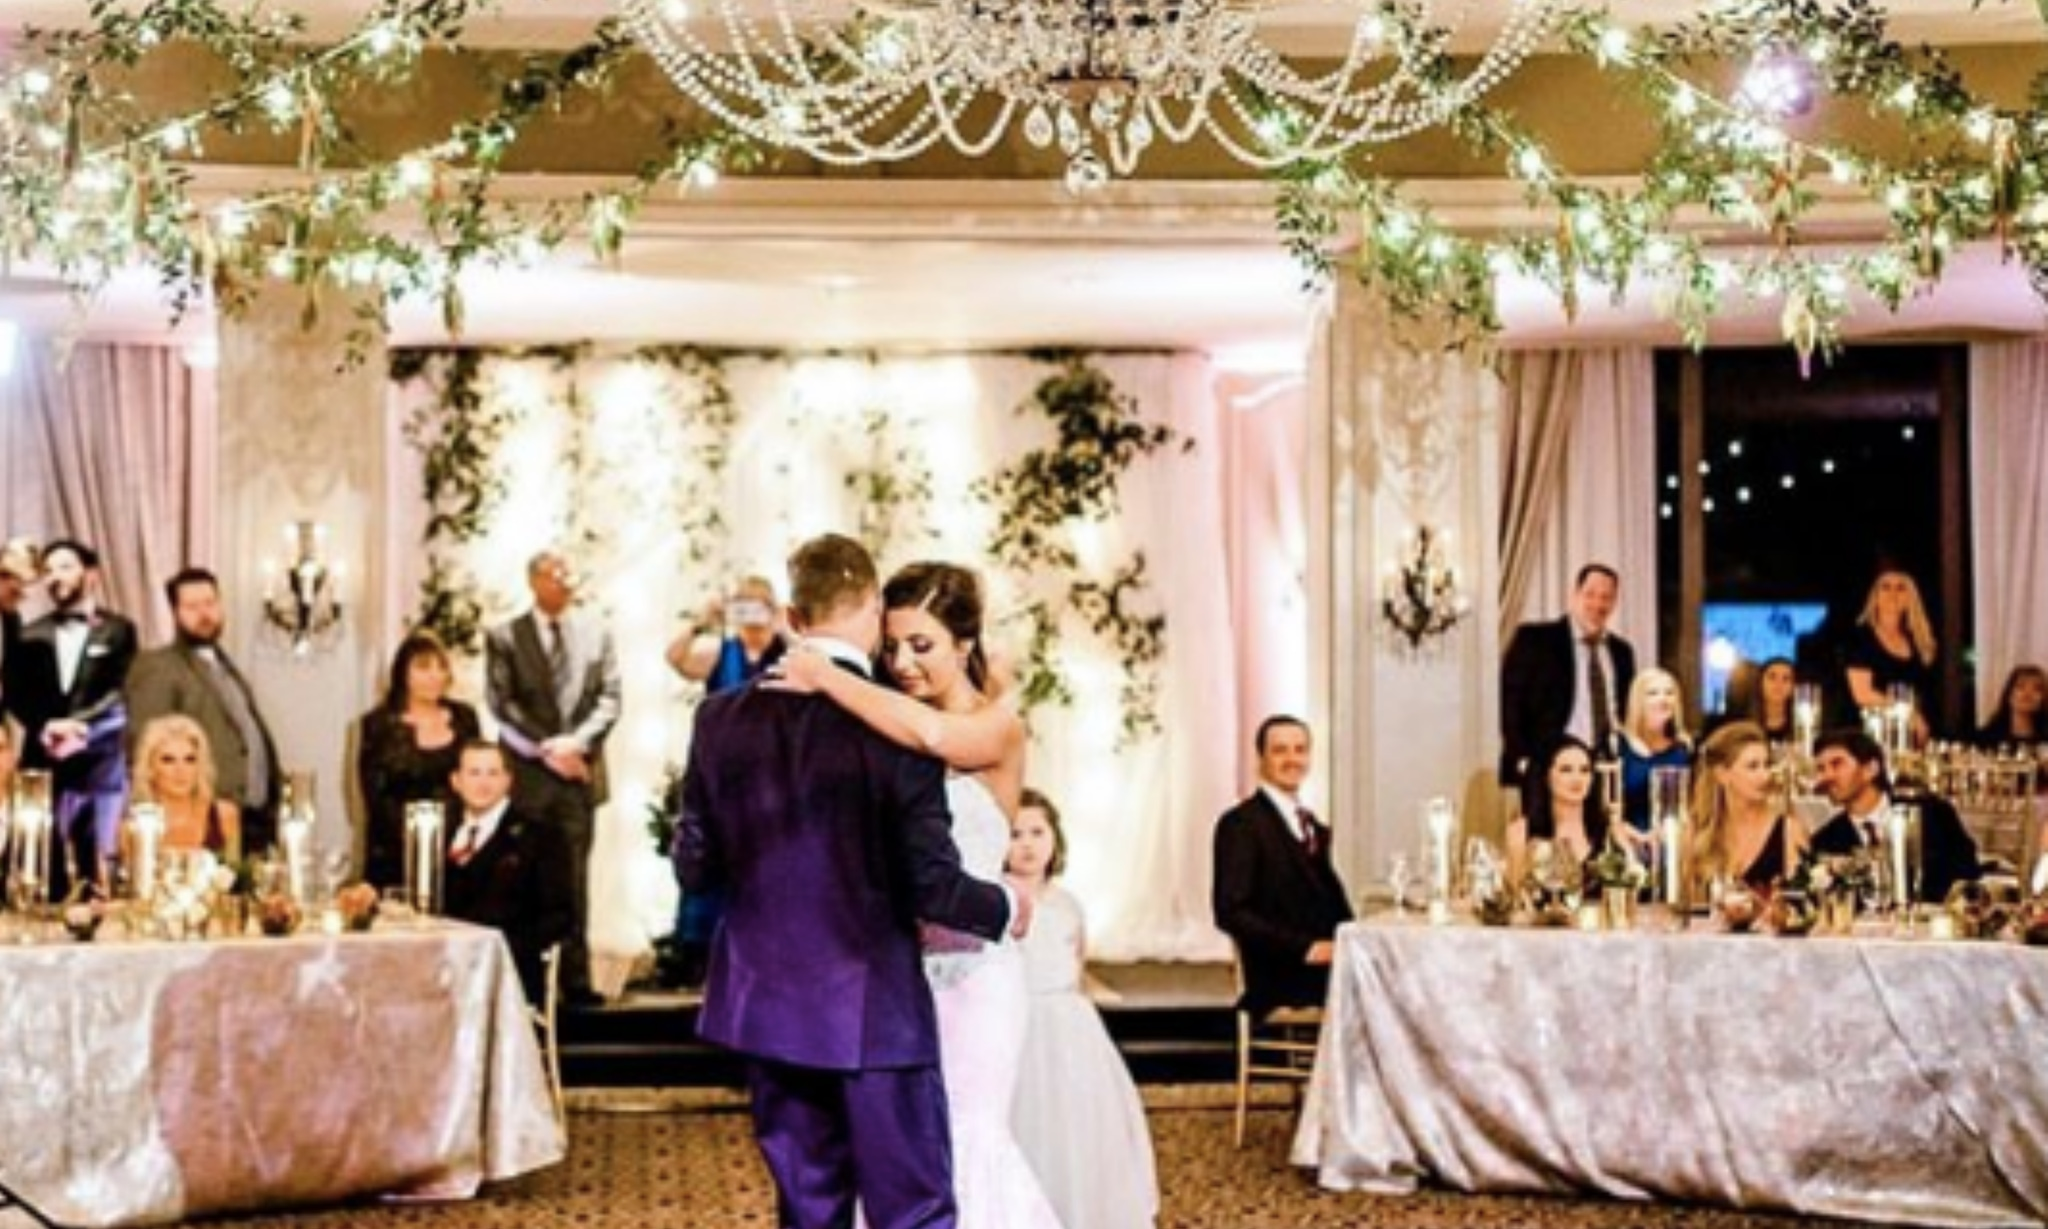 Bride and groom dance under crystal chandeliers with green decor